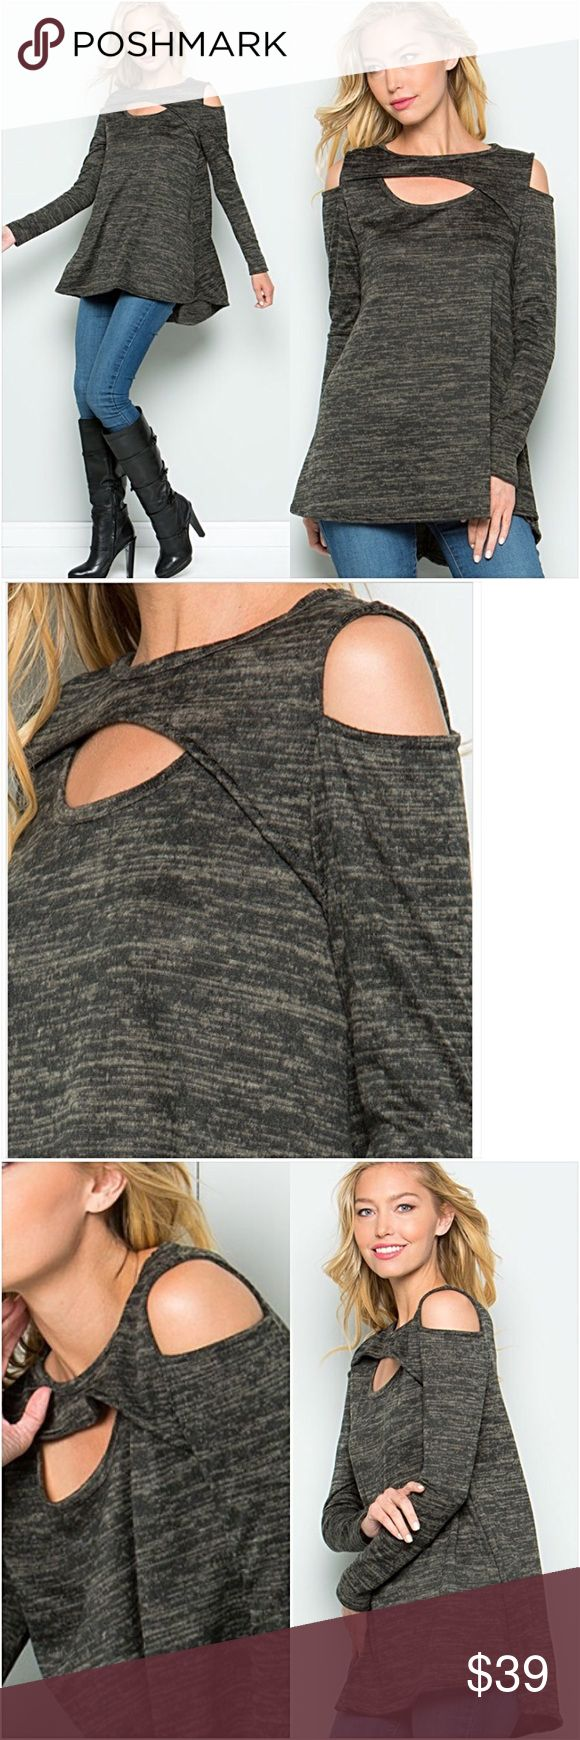 """Marled Cut Out Hi Low Flowy Tunic Top NEW SML How pretty is this tunic?!  Flowy, stretchy, cold shoulder design with  unique cutout detail in marled charcoal gray. Slight hi low effect. Non see through 95% rayon - 5% spandex MADE IN USA True to size  S - 2/4 Bust 32-34 Front Length 27"""" M - 6/8 Bust 36-38 Front Length 27.5"""" L - 10/12 Bust 40-42 Front Length 28"""" Tops"""